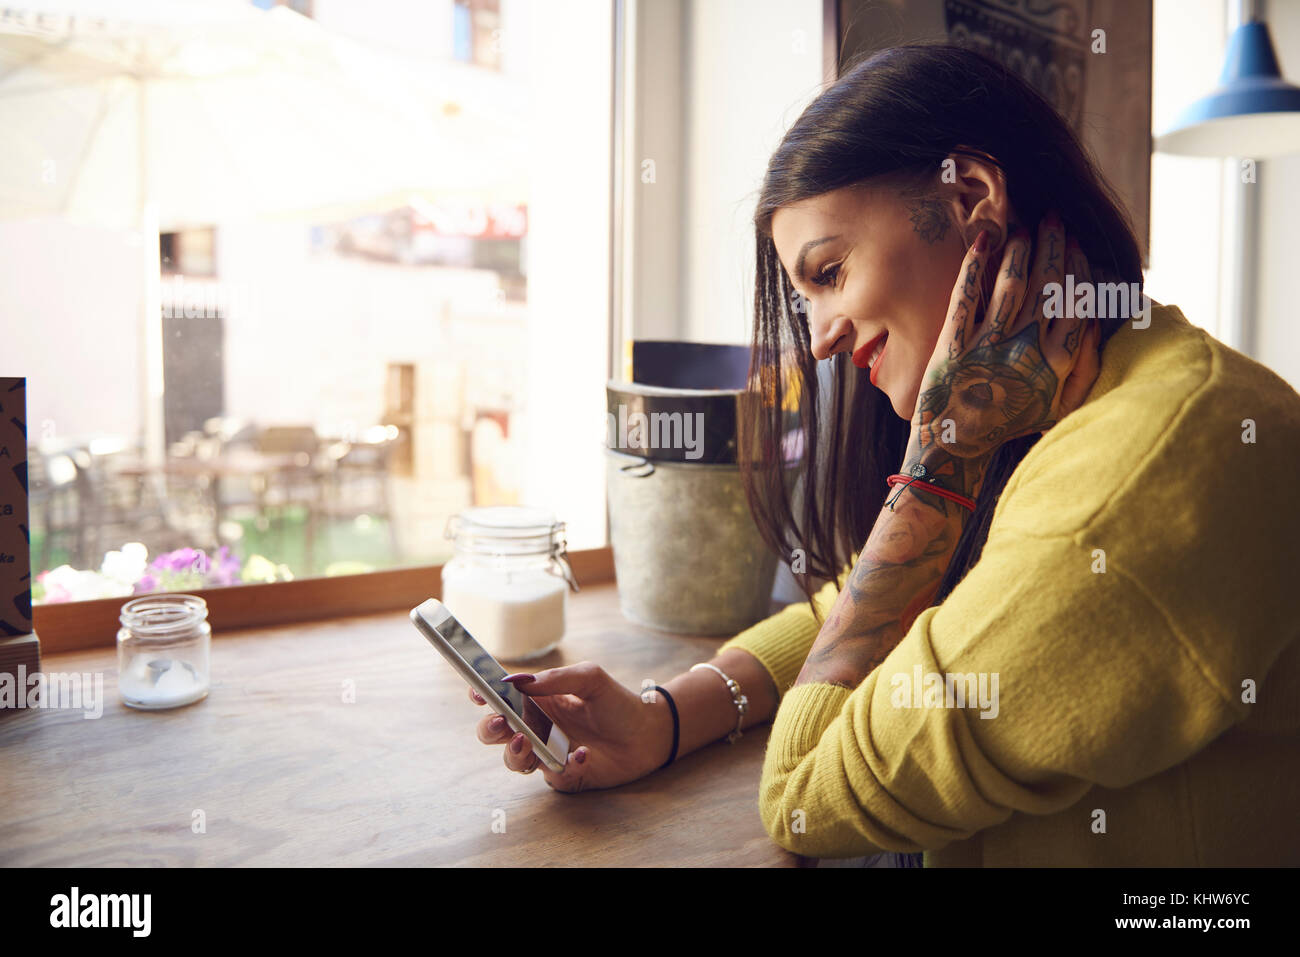 Young woman sitting in cafe, using smartphone, tattoos on arm and hand - Stock Image